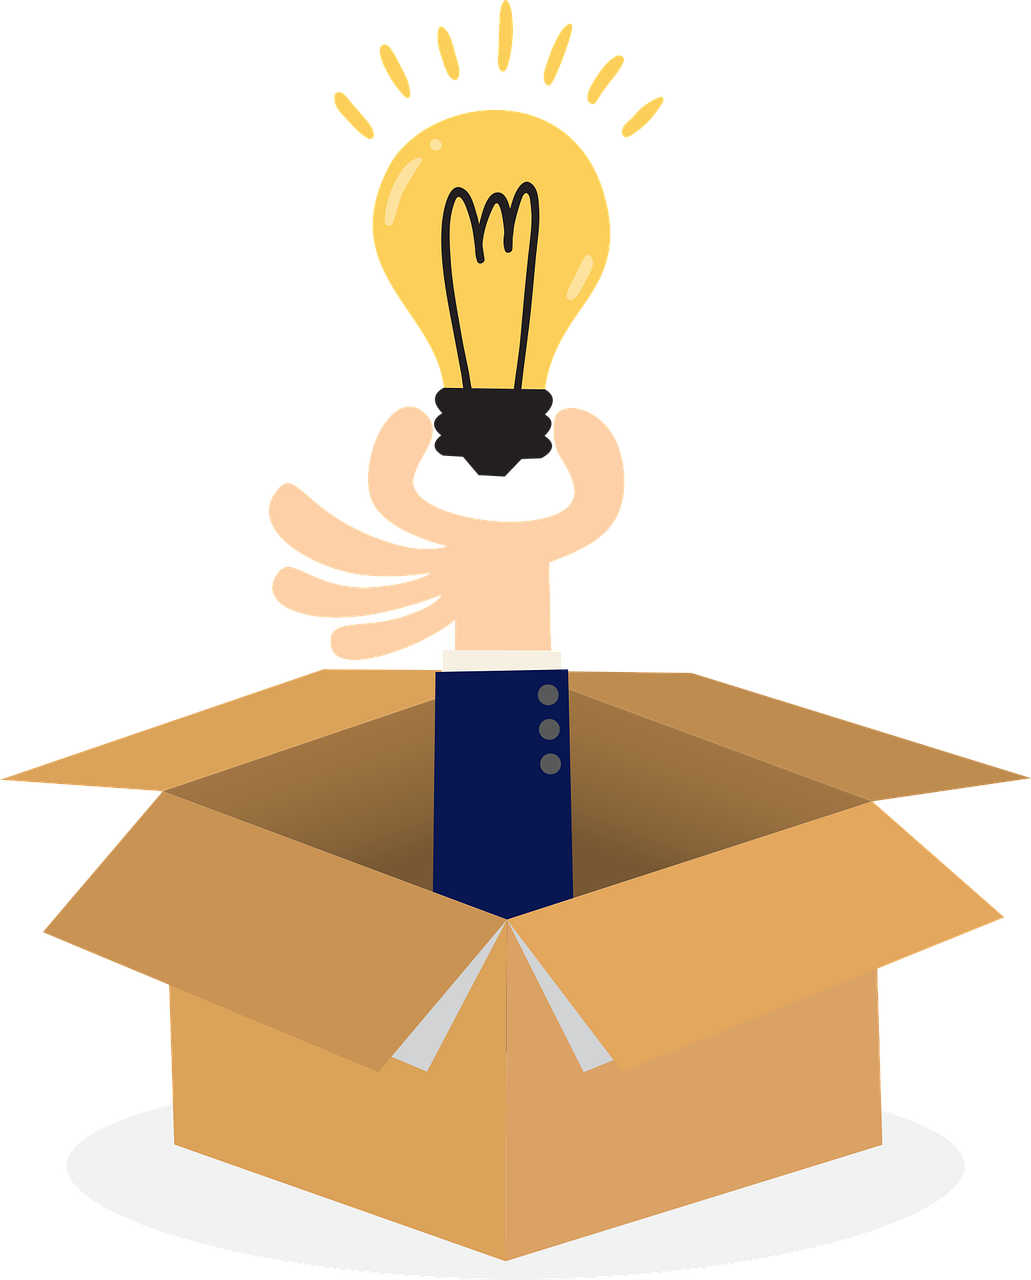 Getting customers for your business idea